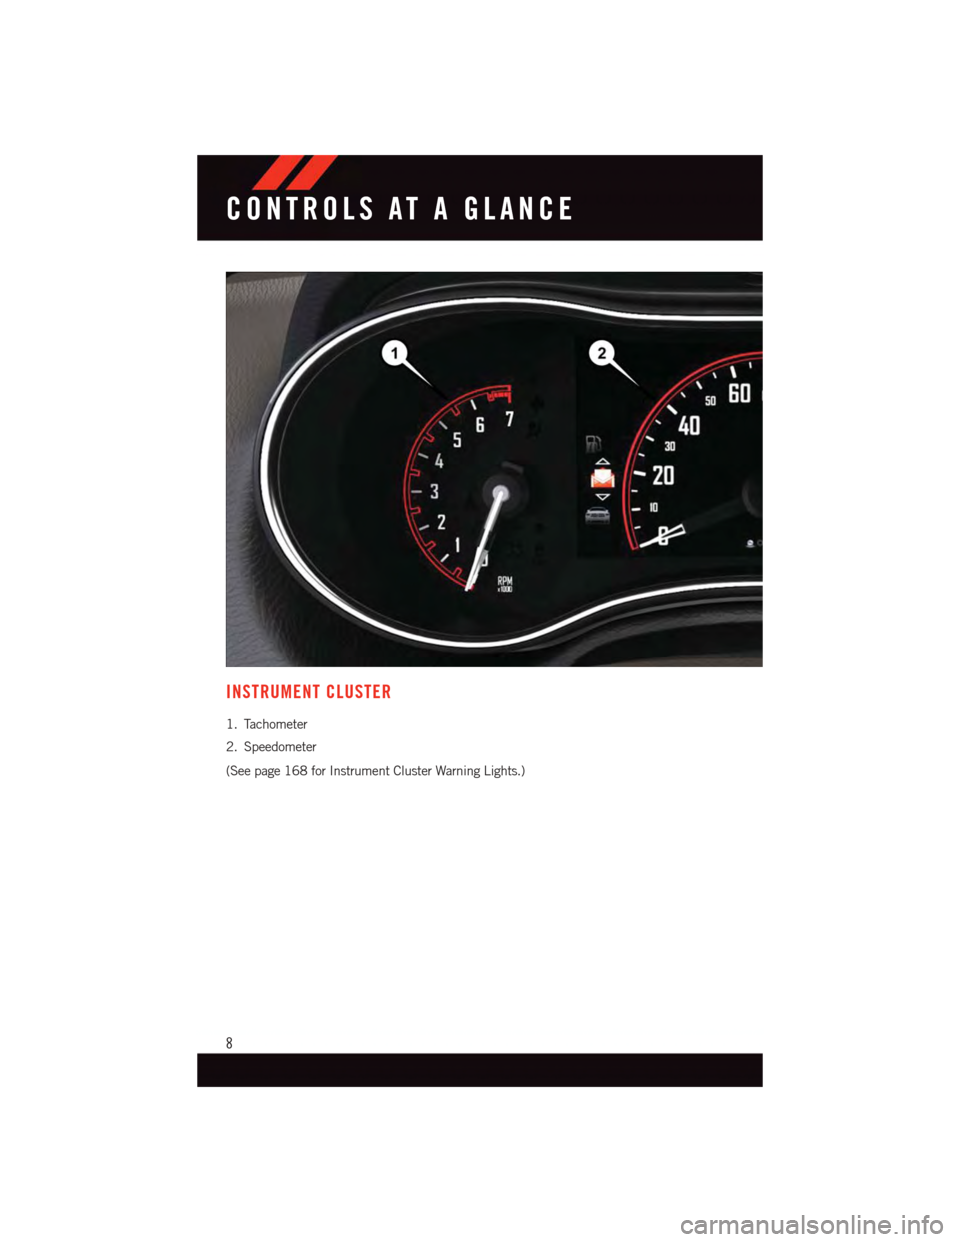 DODGE DURANGO 2015 3.G User Guide INSTRUMENT CLUSTER 1. Tachometer 2. Speedometer (See page 168 for Instrument Cluster Warning Lights.) CONTROLS AT A GLANCE 8